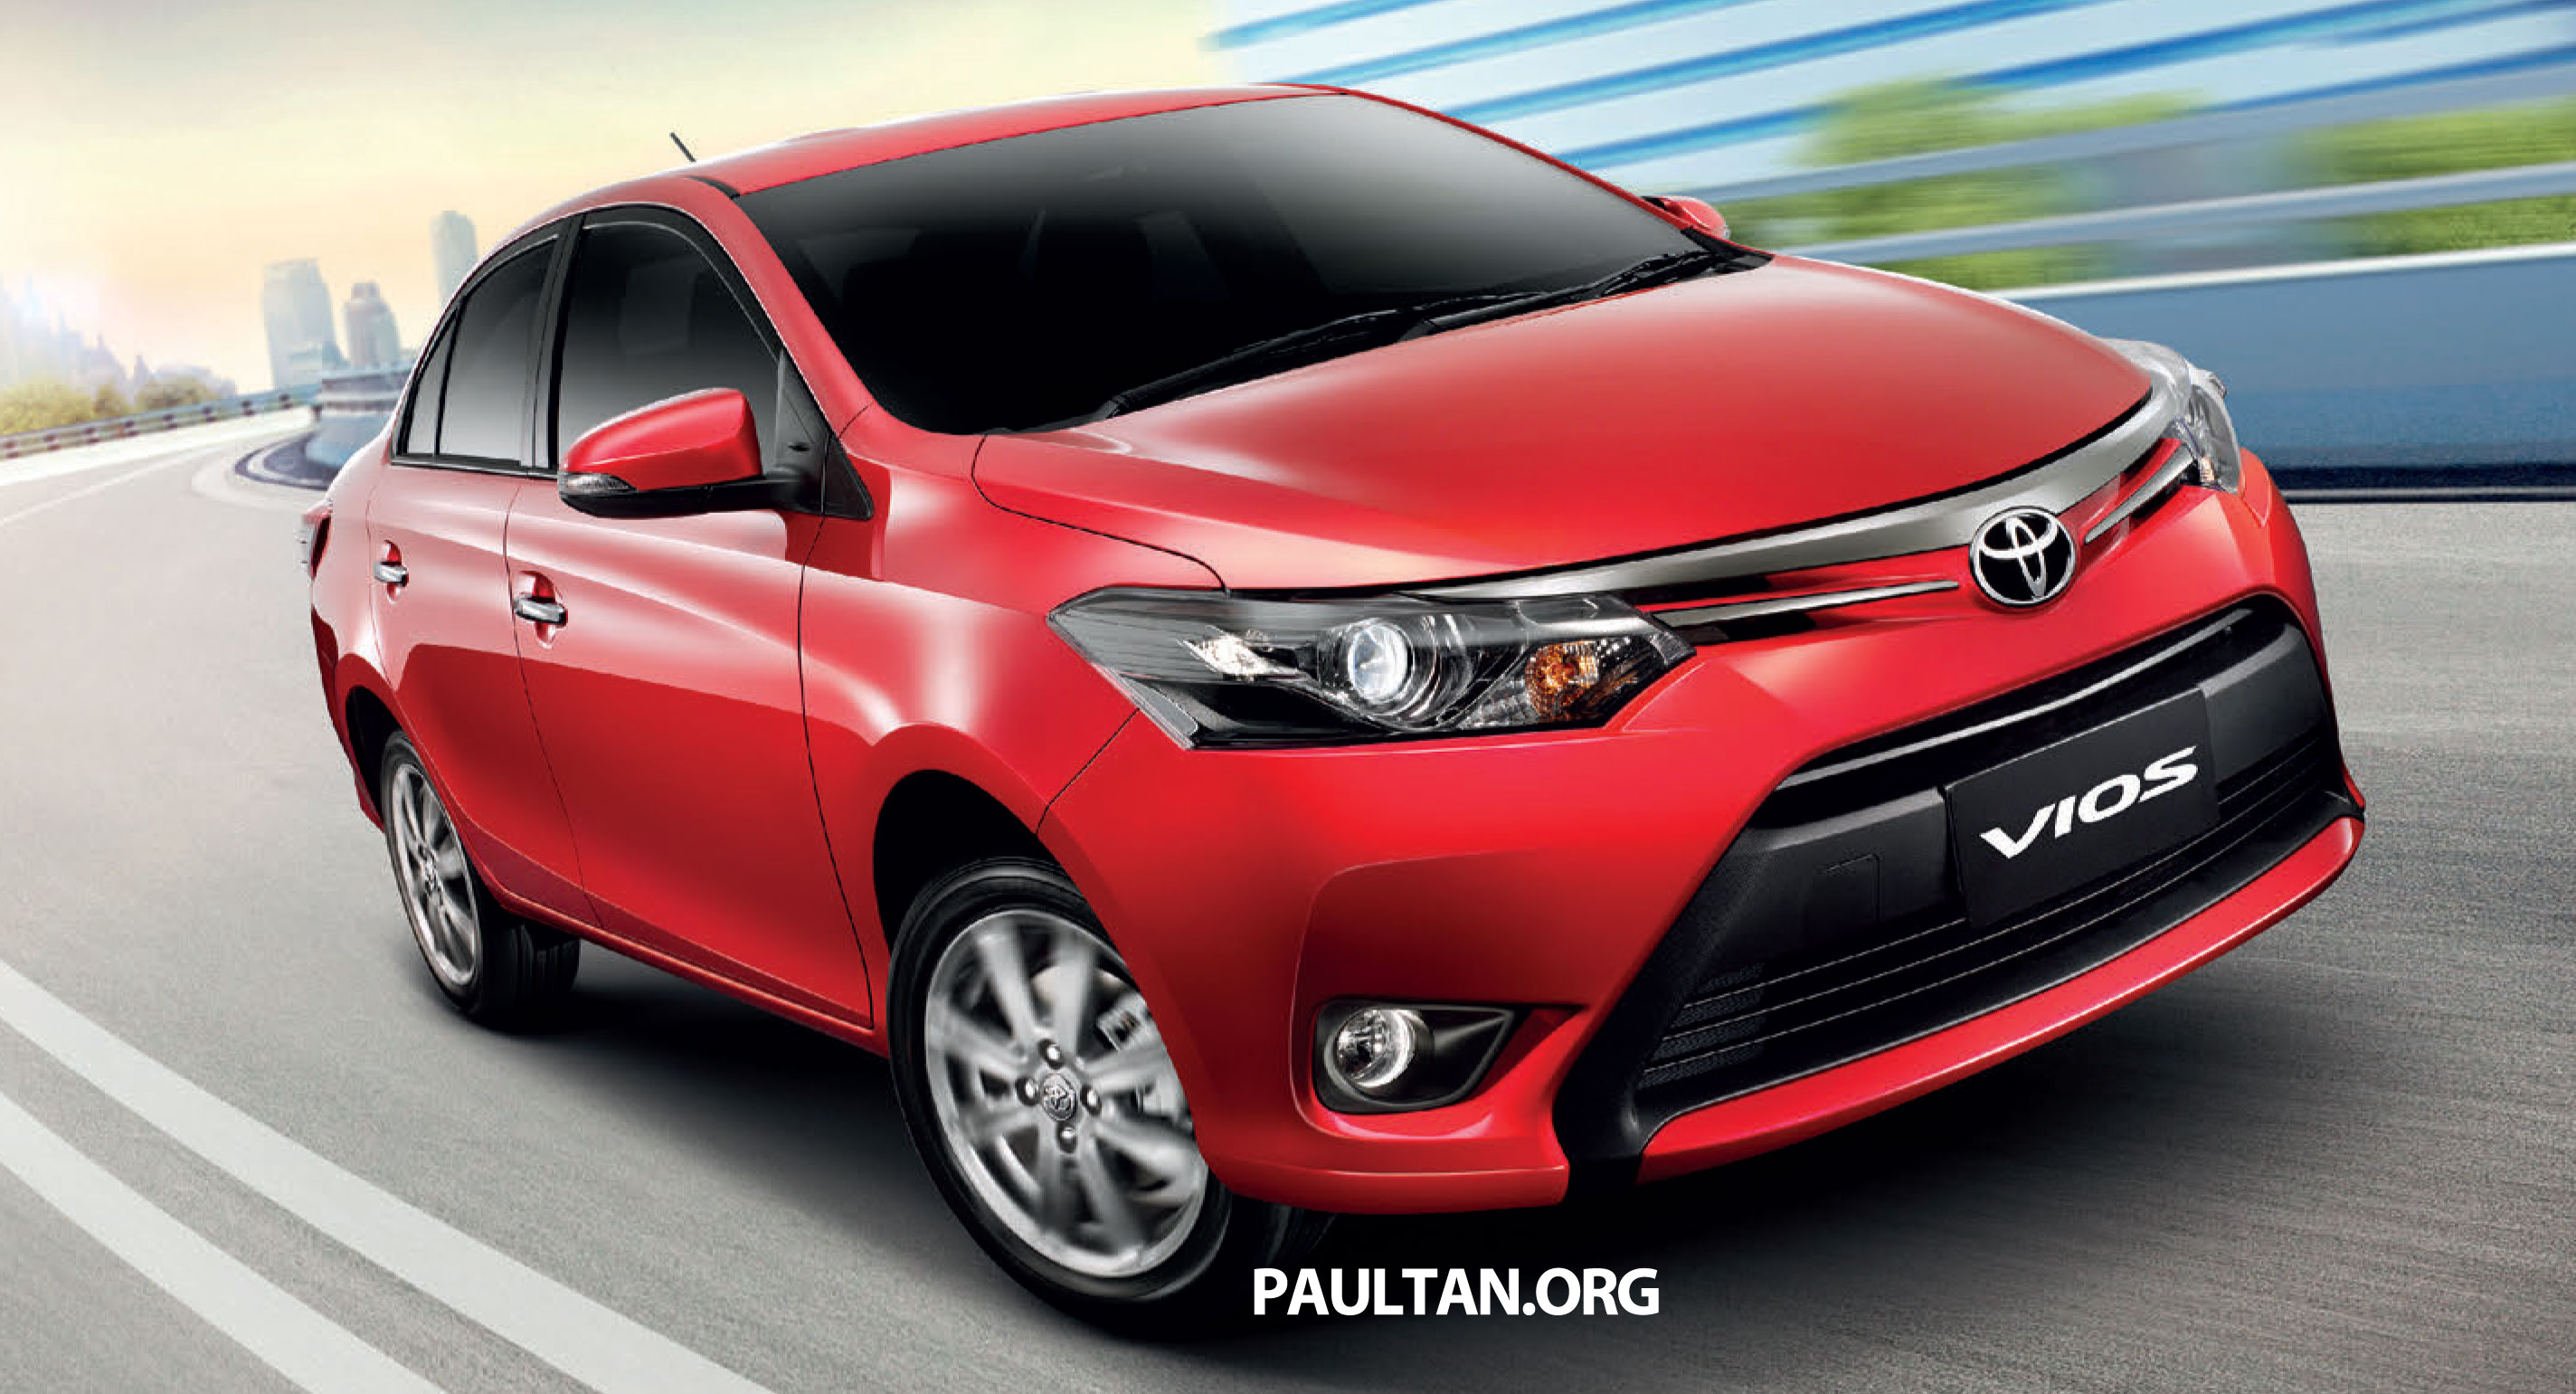 2013 Toyota Vios launched in Thailand – full details Image 163532